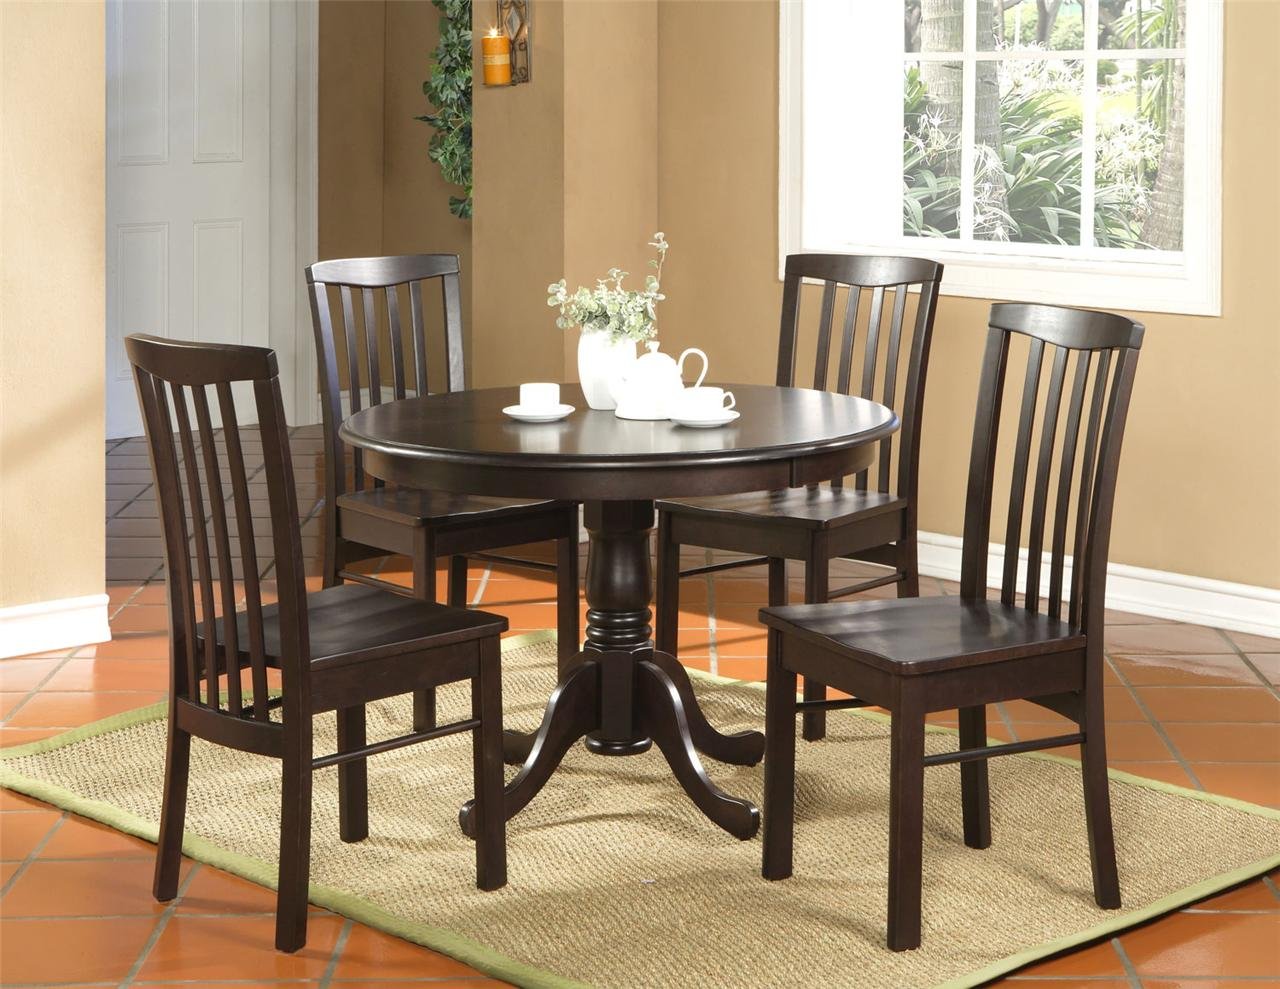 5pc round kitchen dinette set table and 4 chairs walnut ebay for Dinette sets